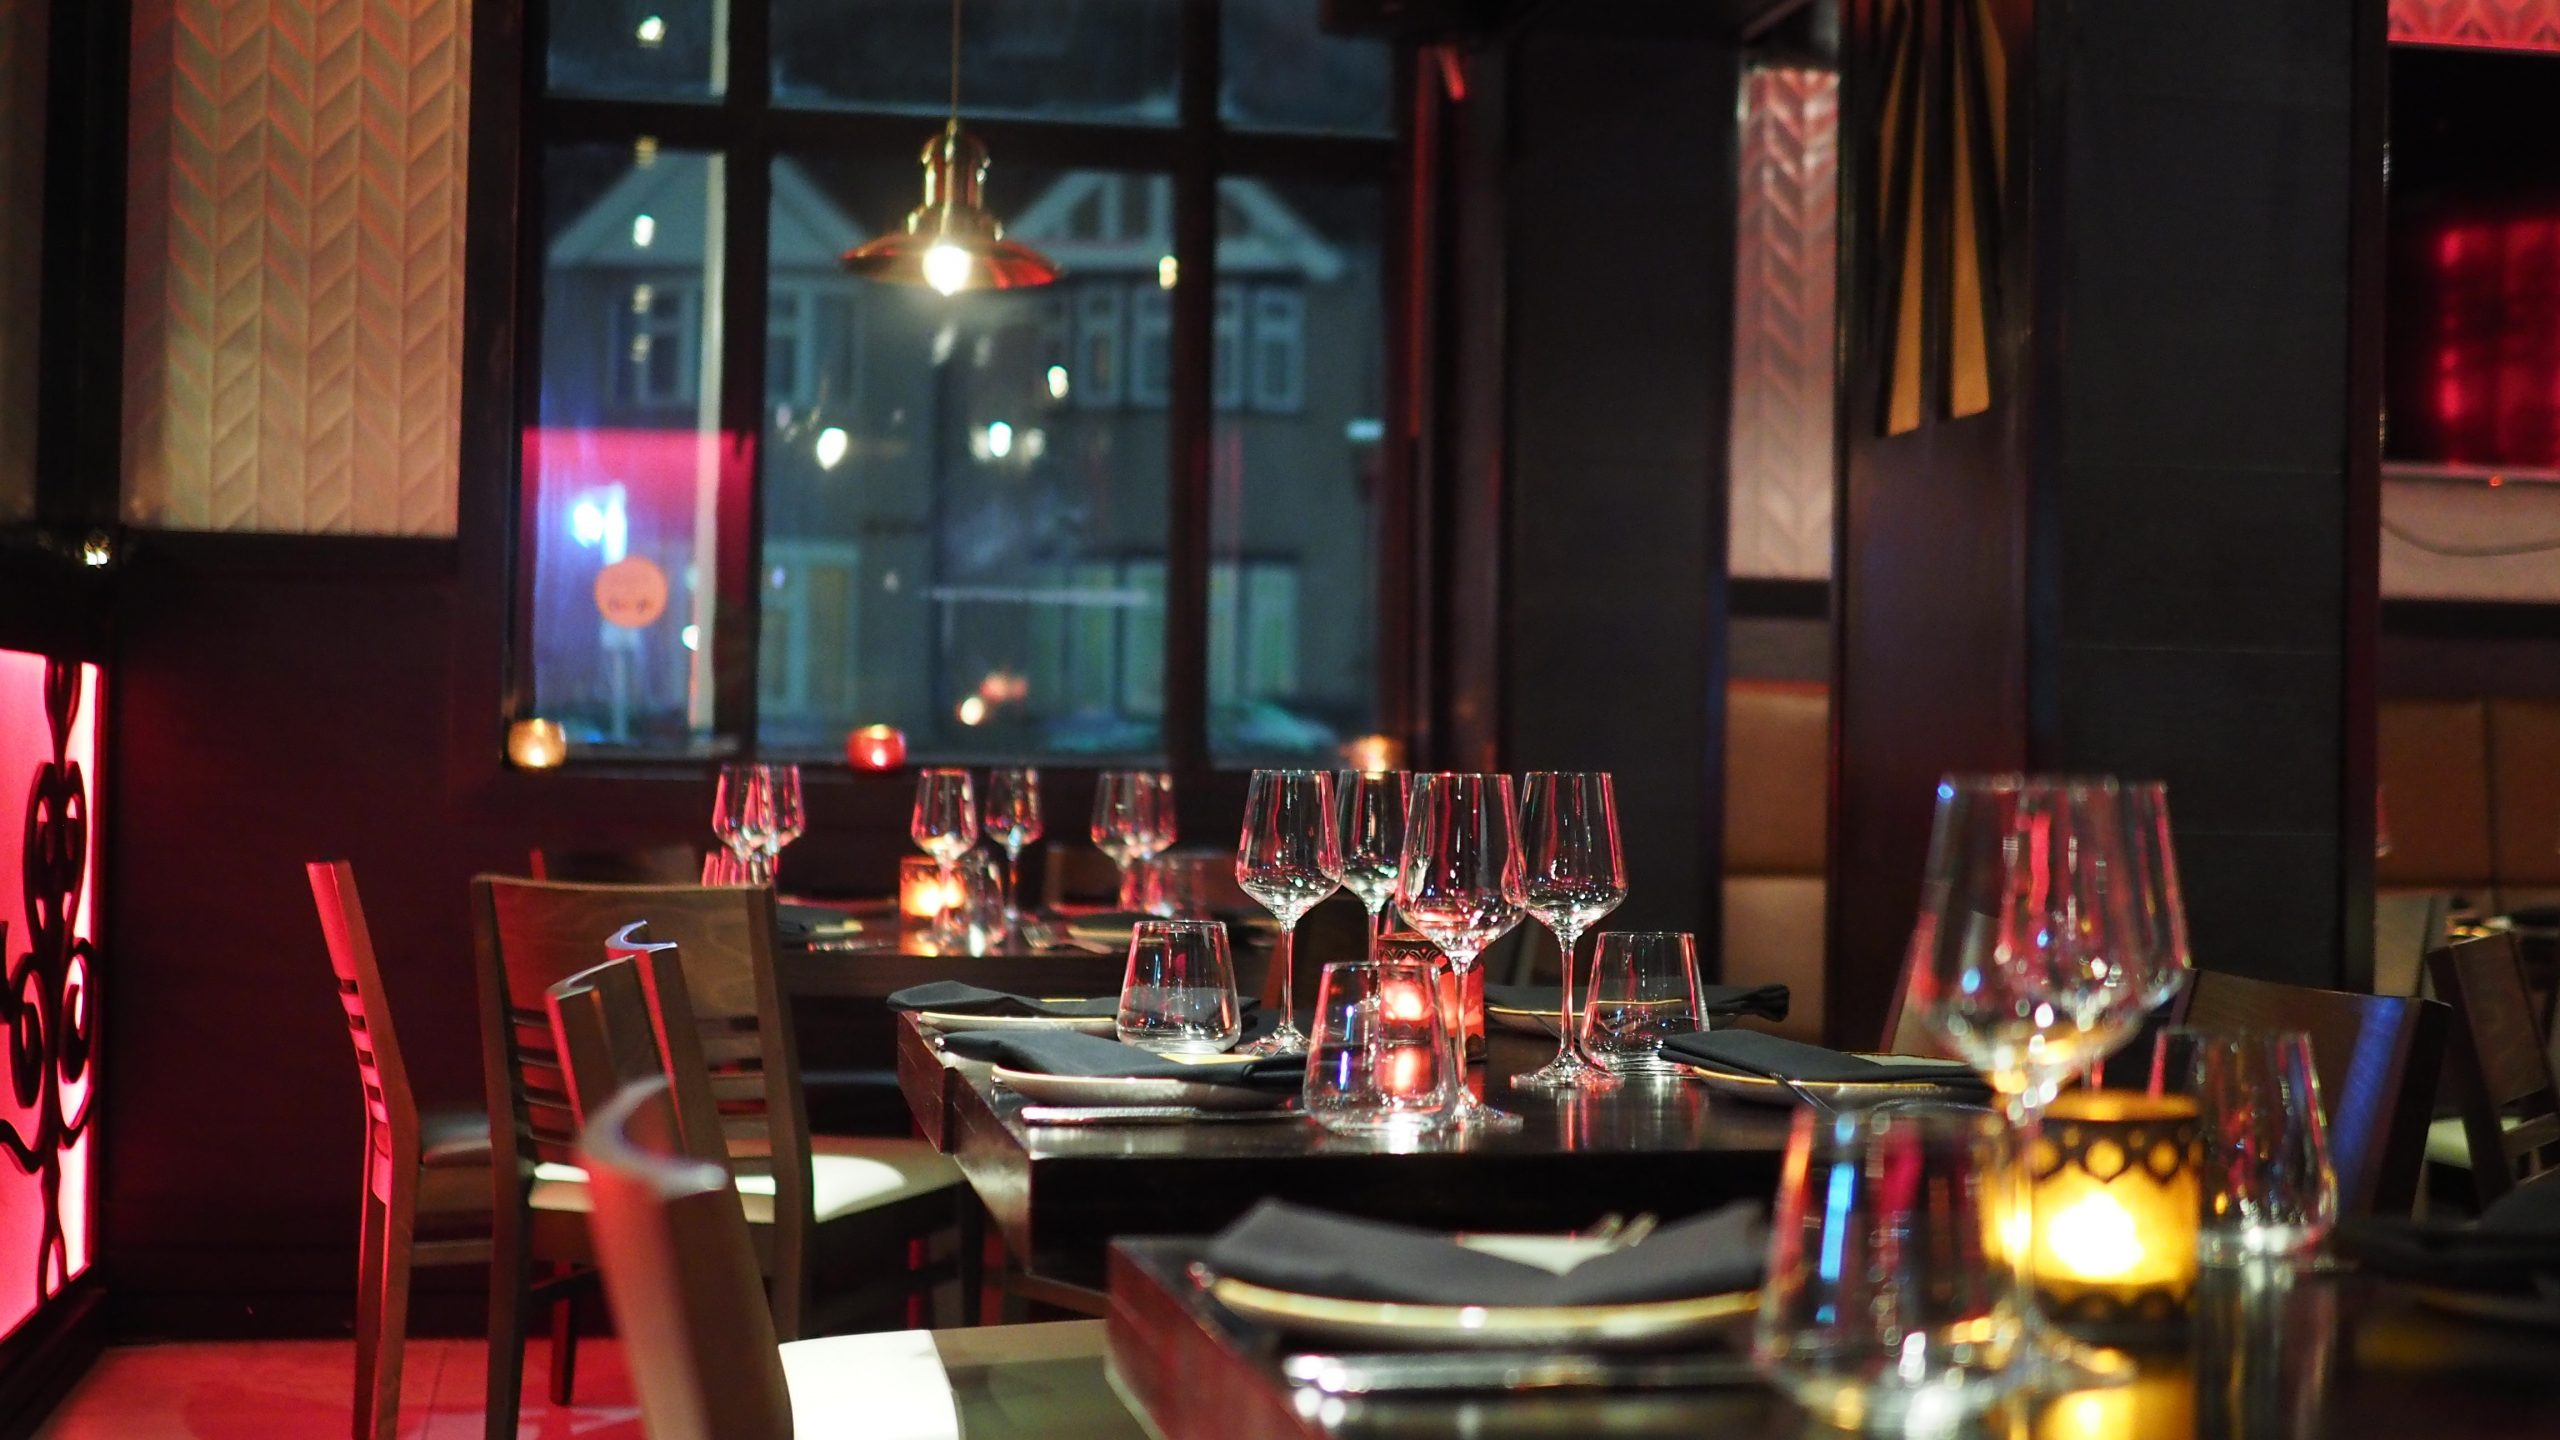 Great food and drink PR and marketing can get you a Michelin star